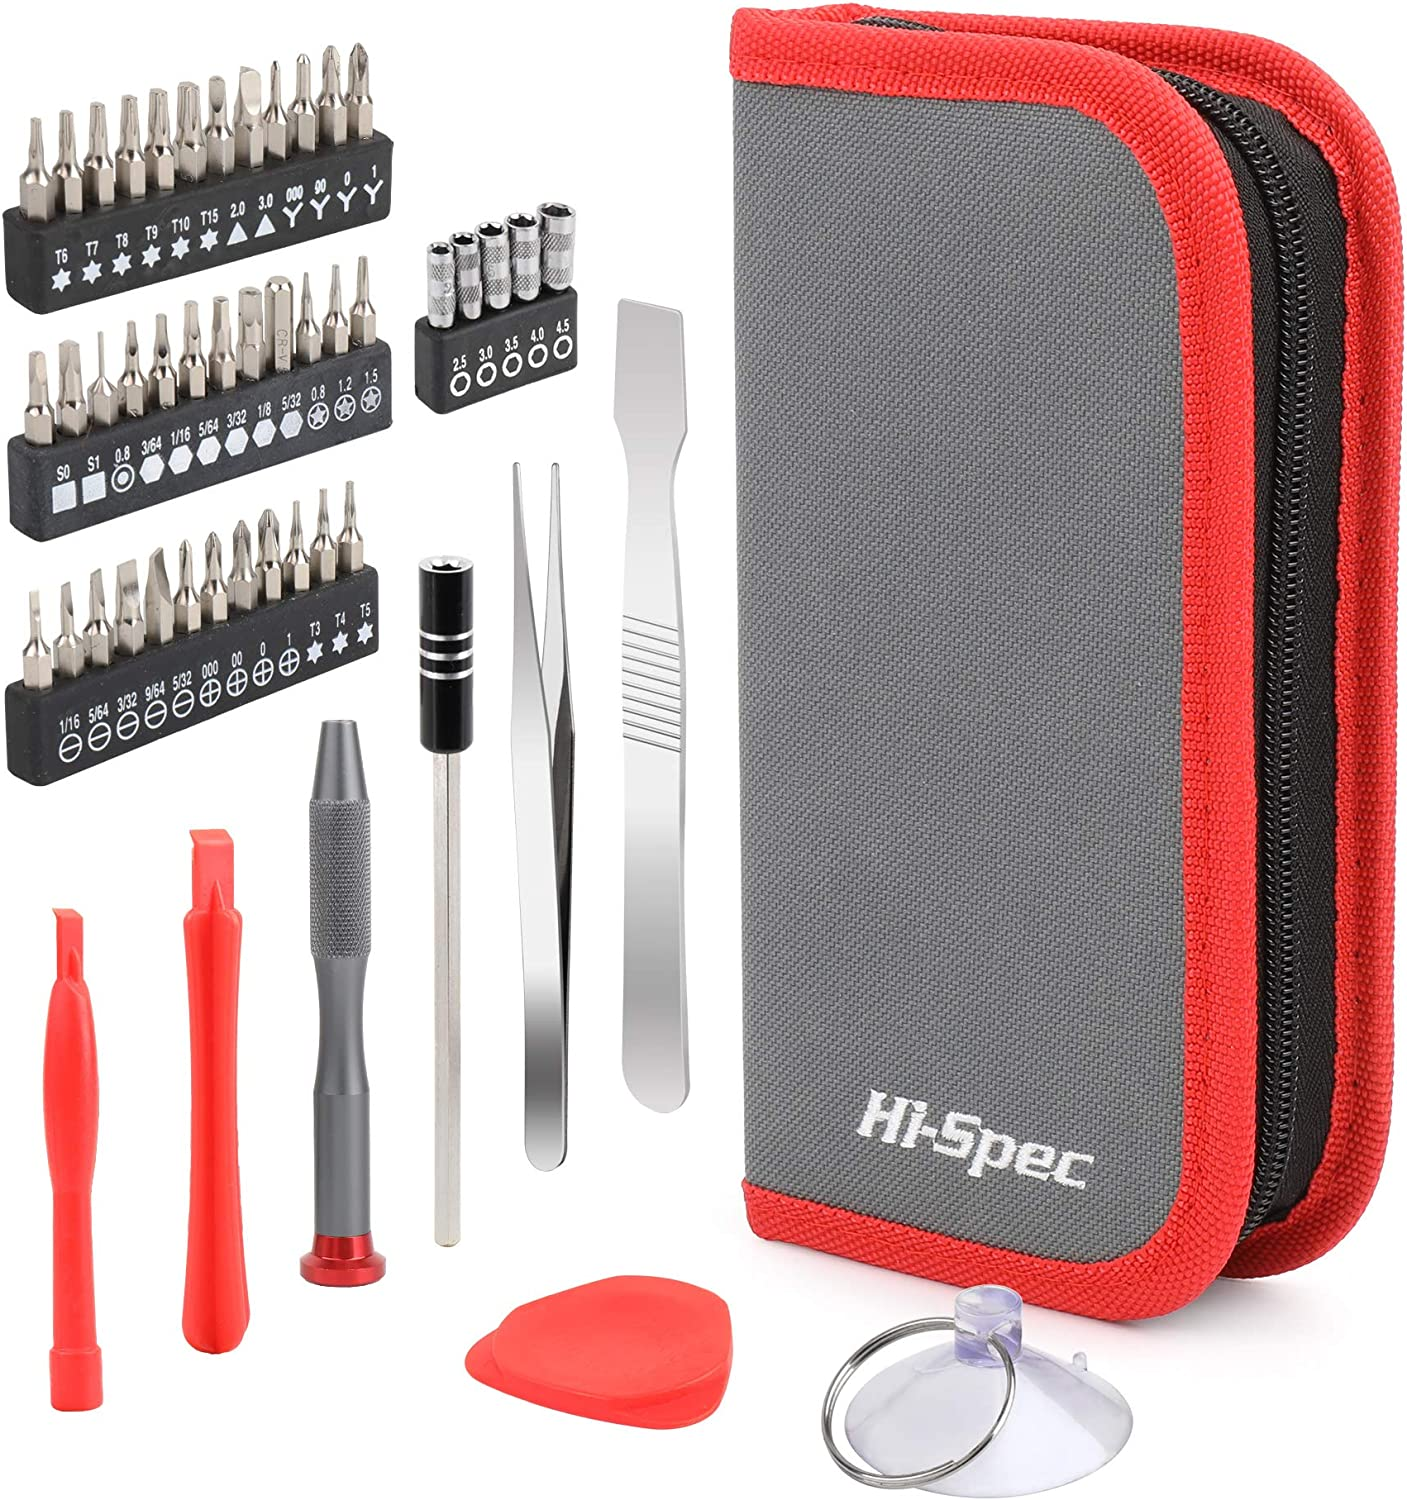 Hi-Spec 49 Piece Repair & Opening Tool Kit Set With Precision Screw Driver Bits For Android Mobile Cell Phones, iPhones, Macbooks, Laptops, Notebooks, Video Game Consoles & Electronic Gadgets: Home Improvement